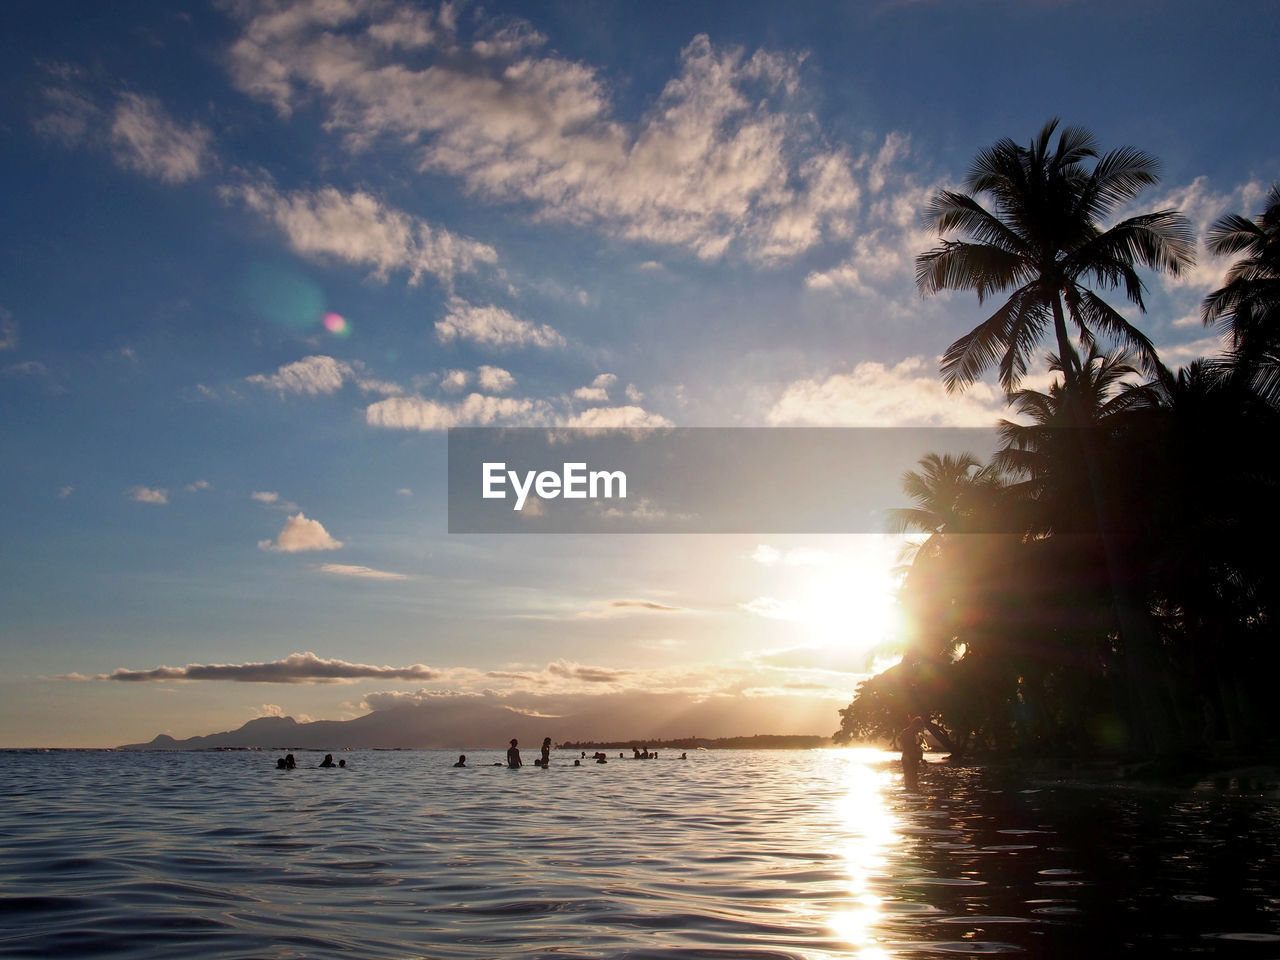 sky, water, sunset, cloud - sky, beauty in nature, scenics - nature, sea, palm tree, tranquil scene, tropical climate, tranquility, tree, nature, waterfront, no people, silhouette, sunlight, plant, idyllic, sun, outdoors, coconut palm tree